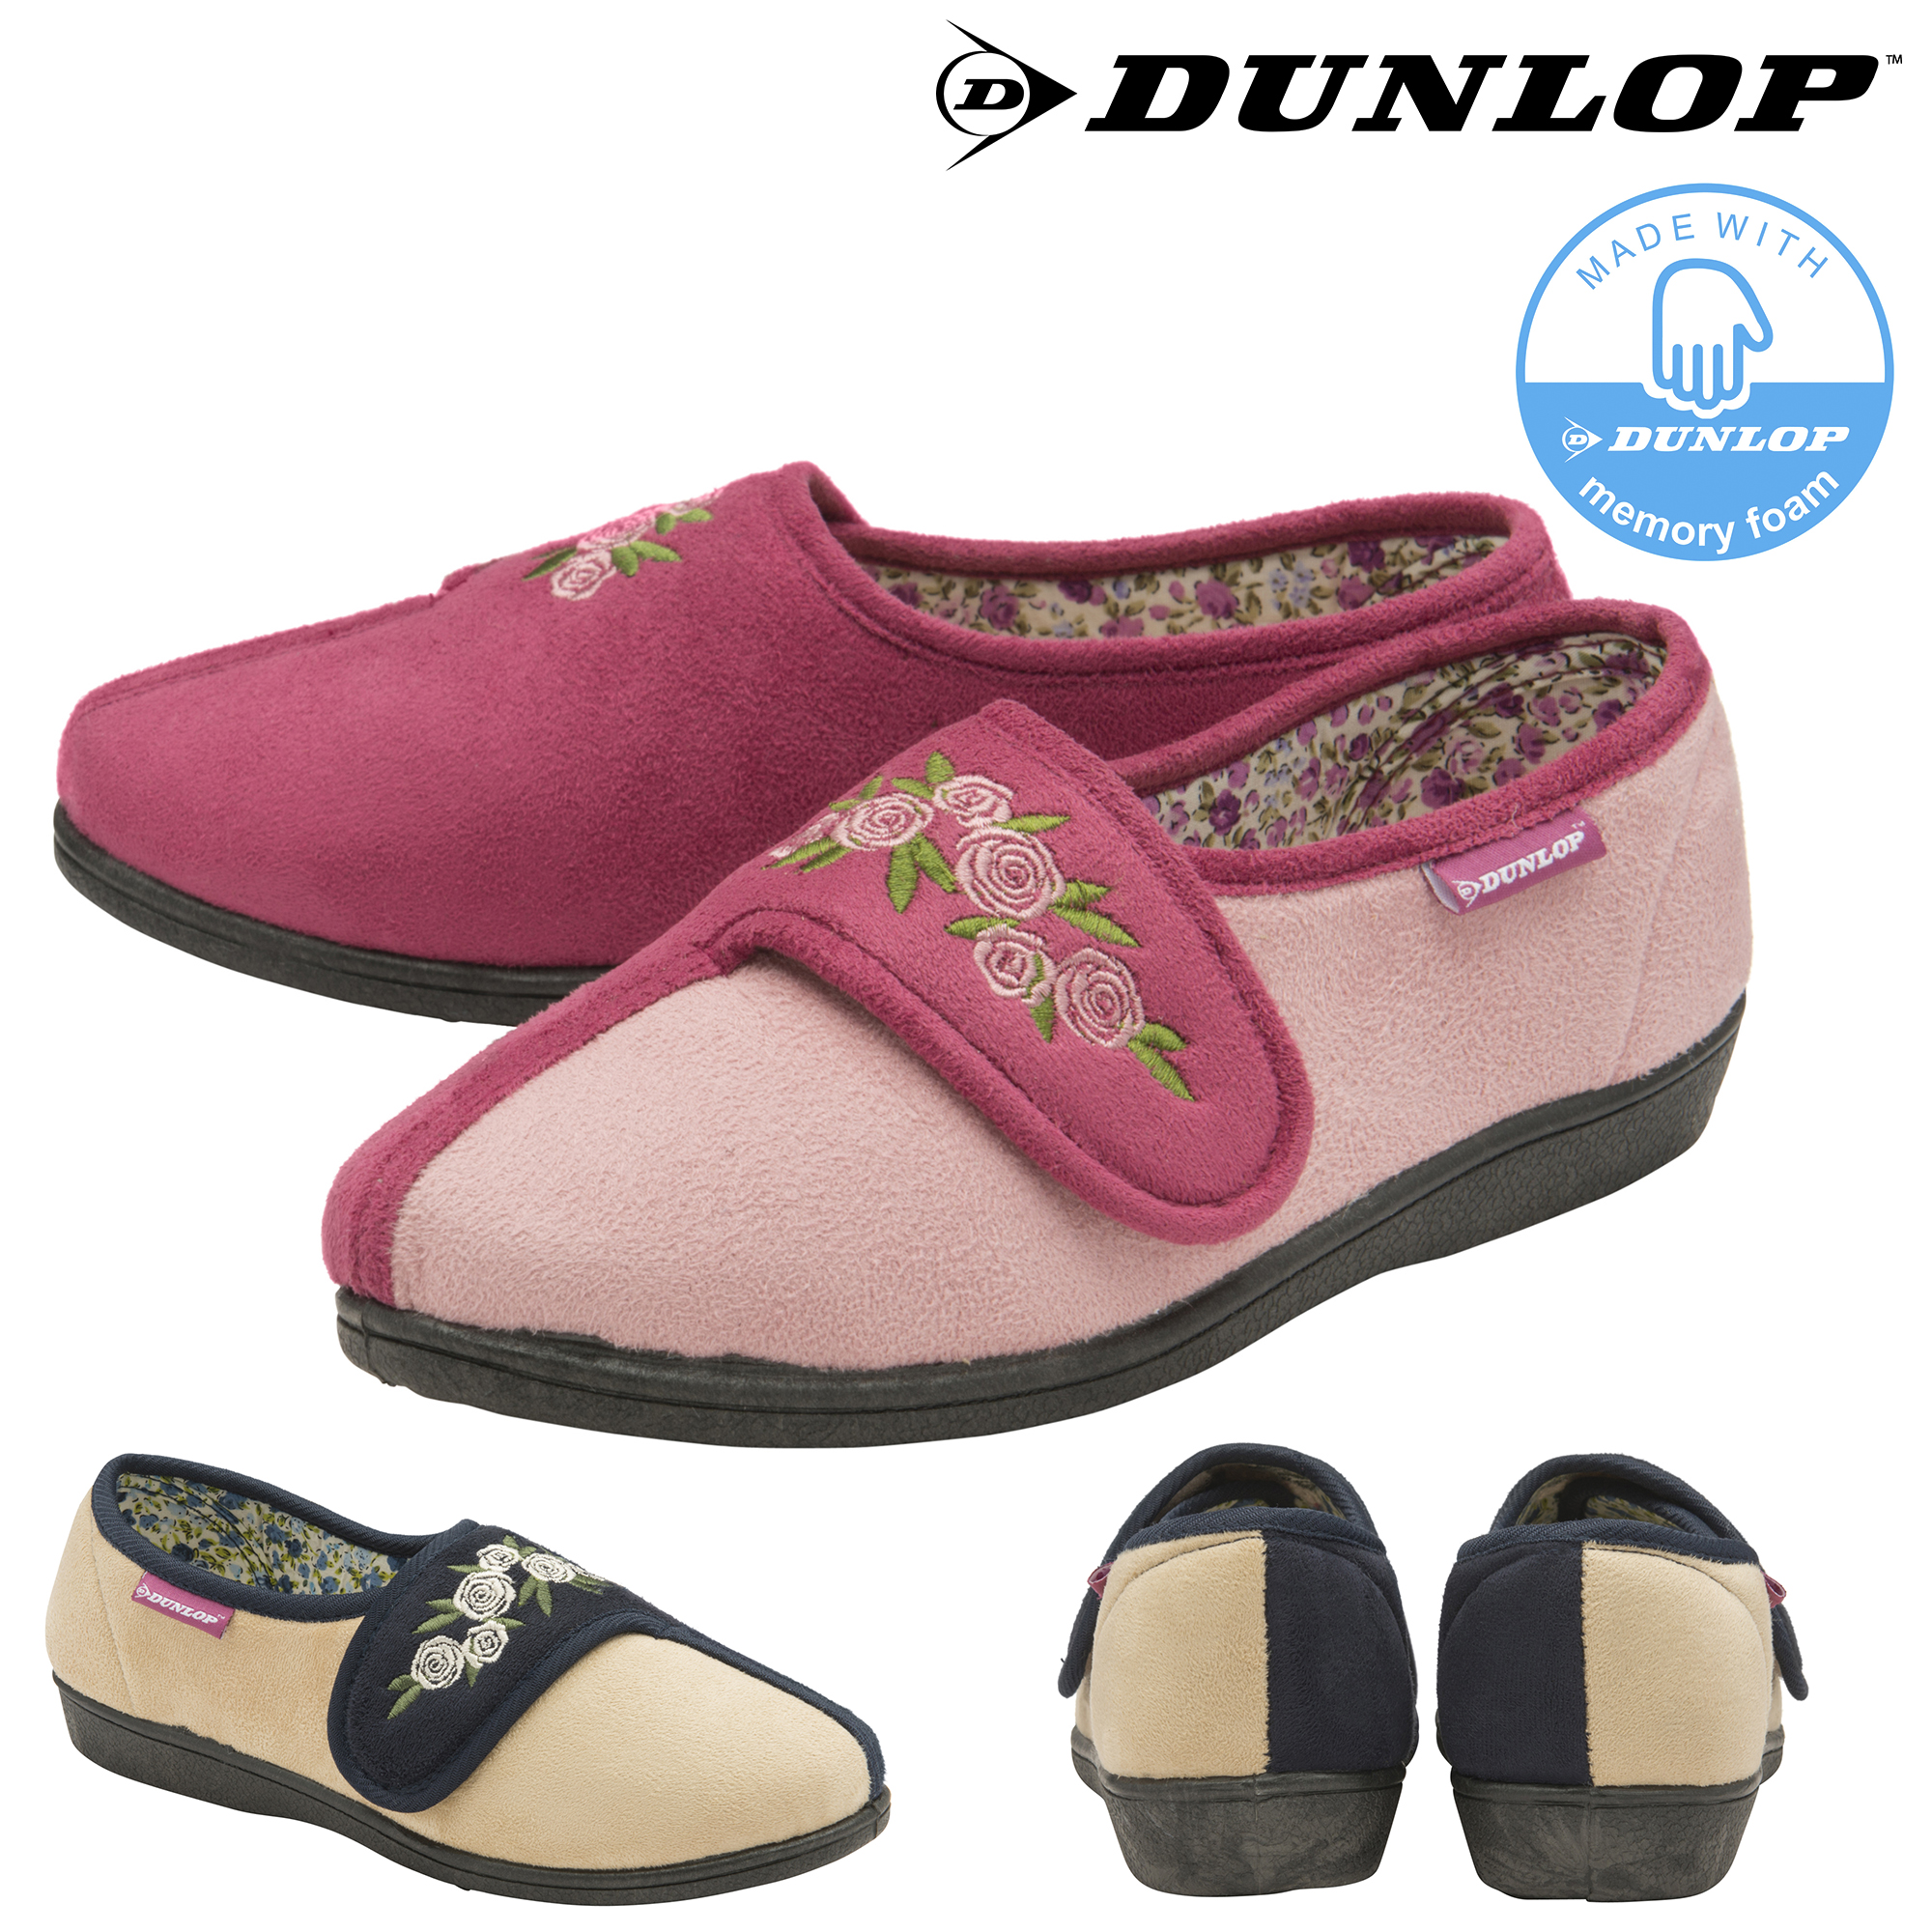 Dunlop Ladies Womens Slippers Easy Fastening Slip On Machine Washable Size 3-8